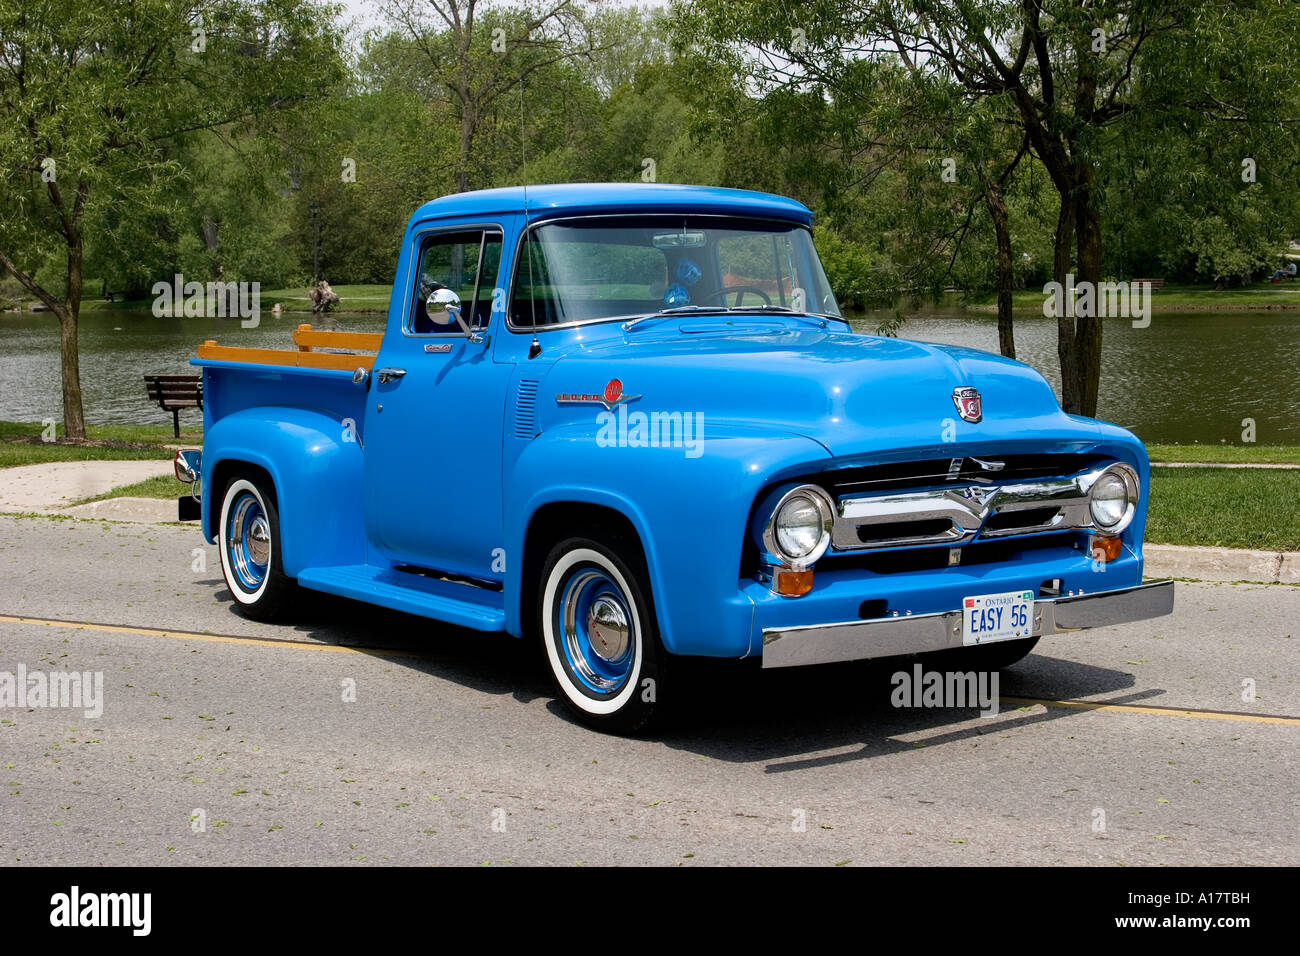 Ford F100 Pickup Truck Stock Photos 1955 Long Bed Pick Up 1956 Custom Cab On Pavement Image